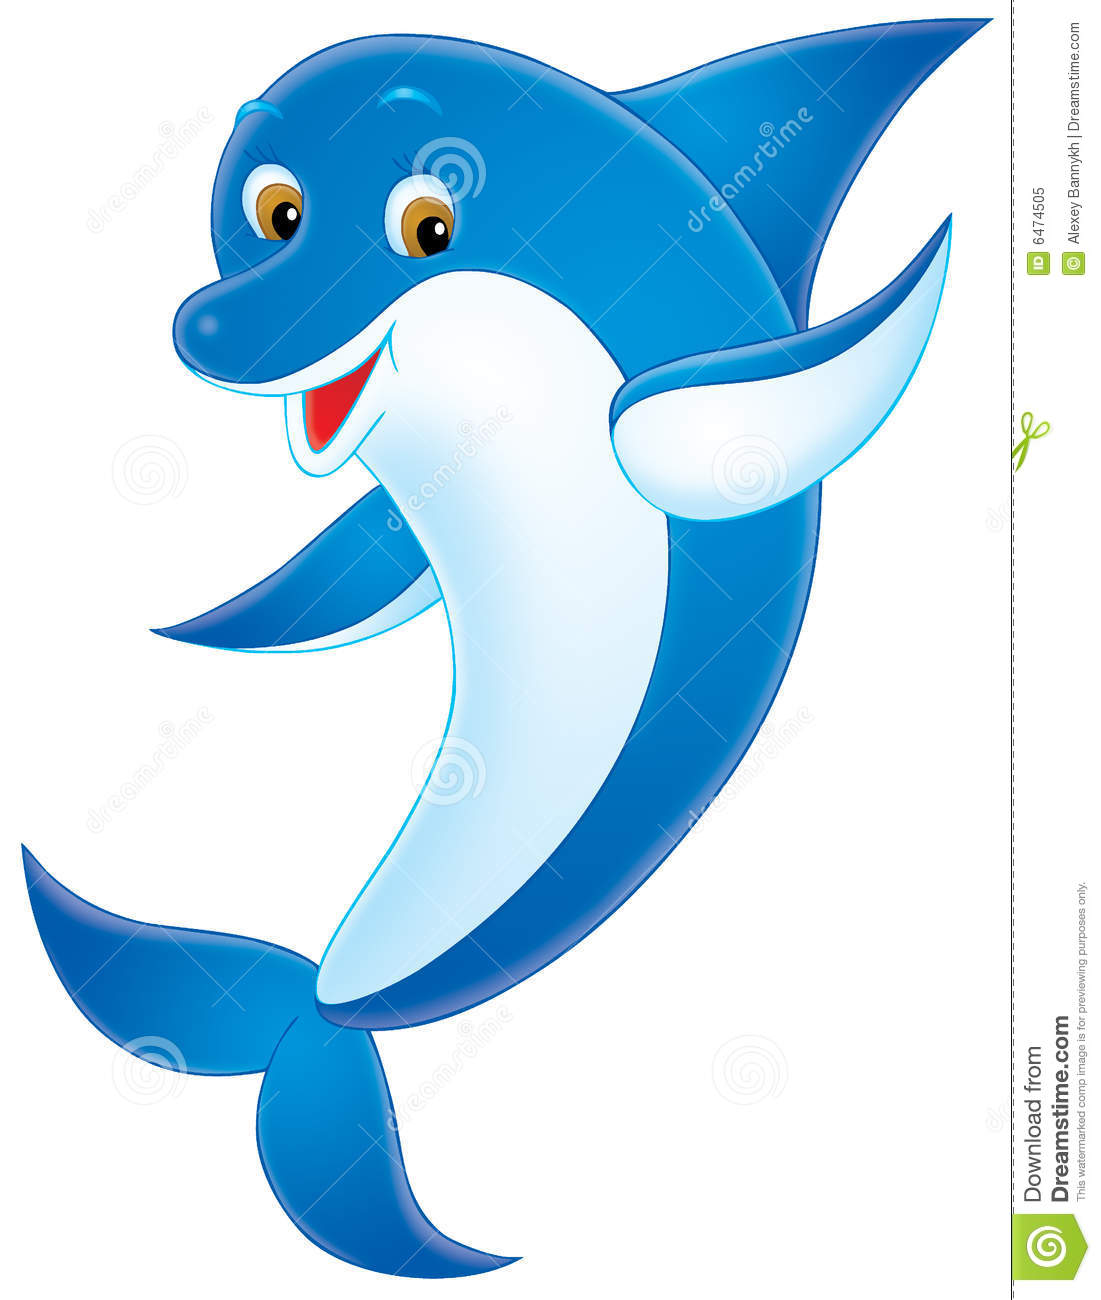 Dolphin Clipart 1130779 Illustration By -Dolphin Clipart 1130779 Illustration By Colematt-10